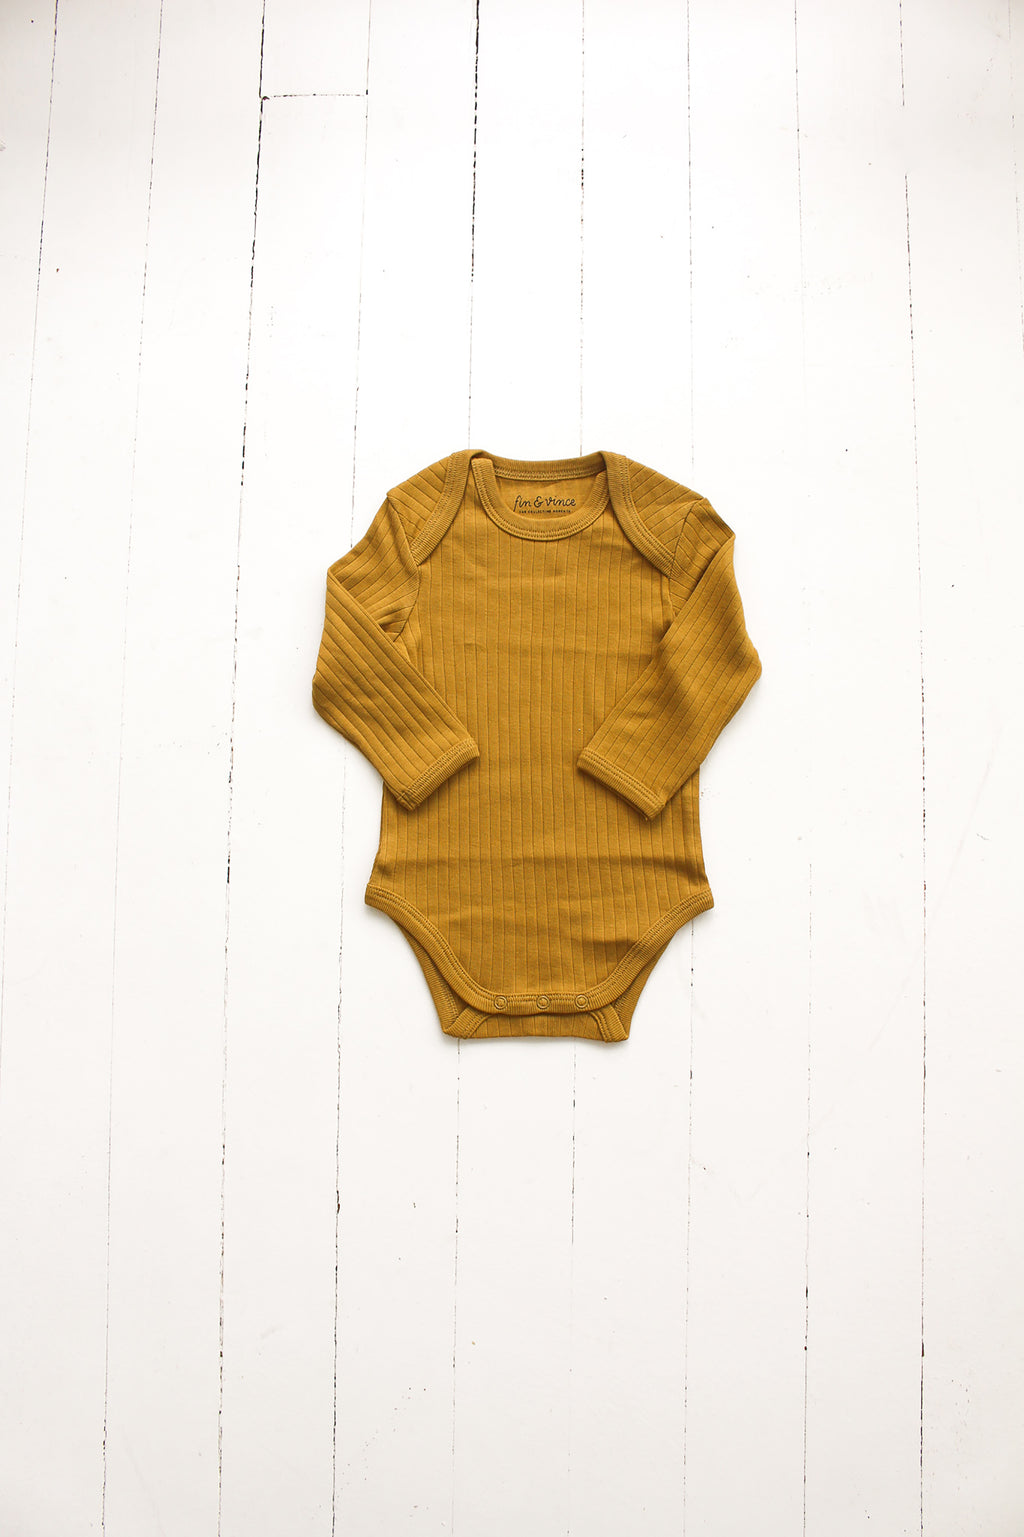 Fin and Vince - Long Sleeve Onesie (Mustard)